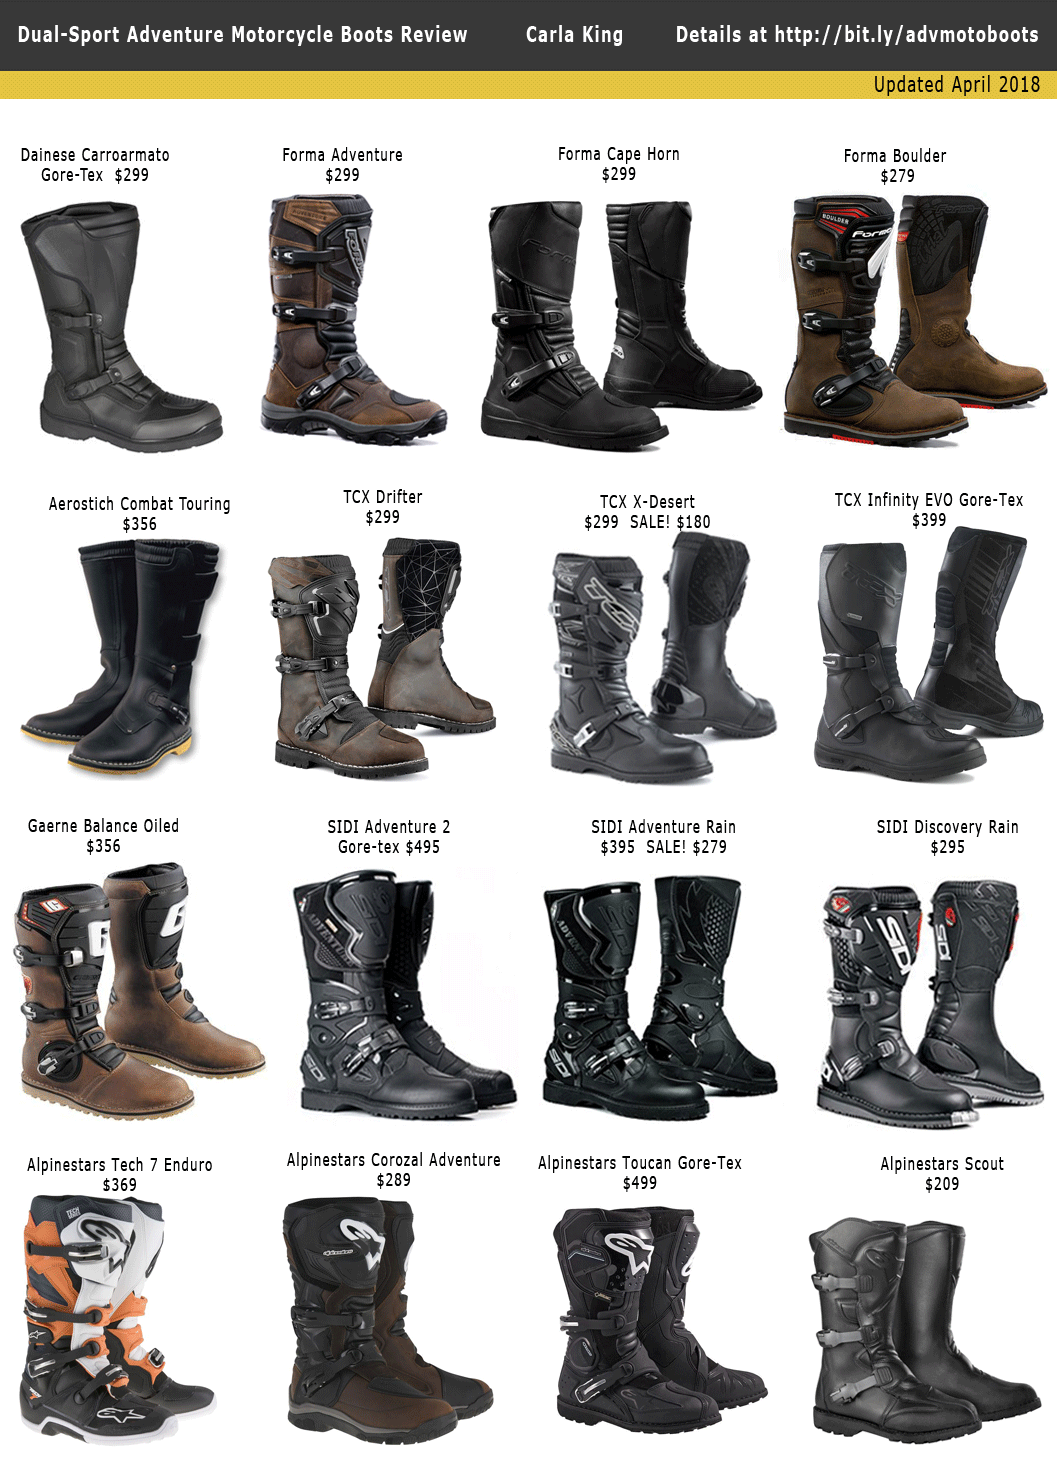 Dual-sport motorcycle adventure boots reviews Carla King